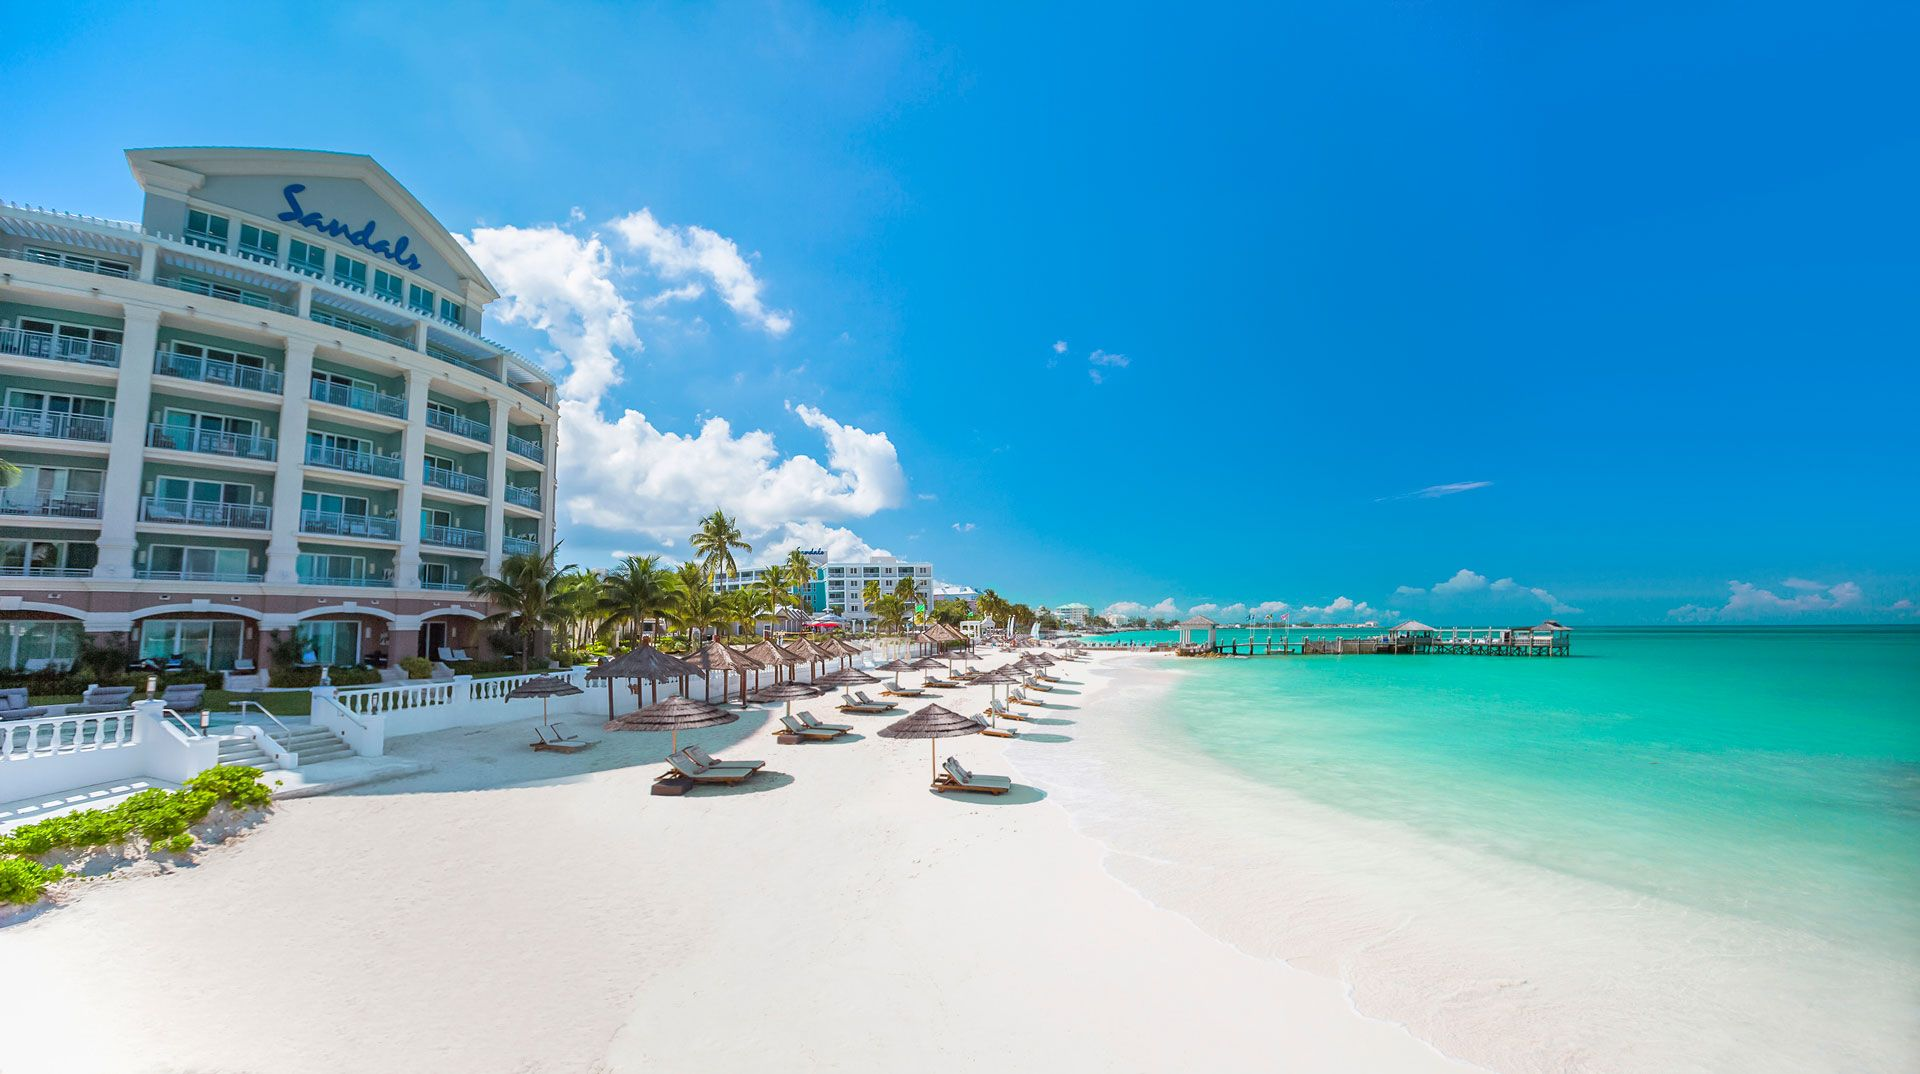 Sandals Royal Bahamian on Cable Beach